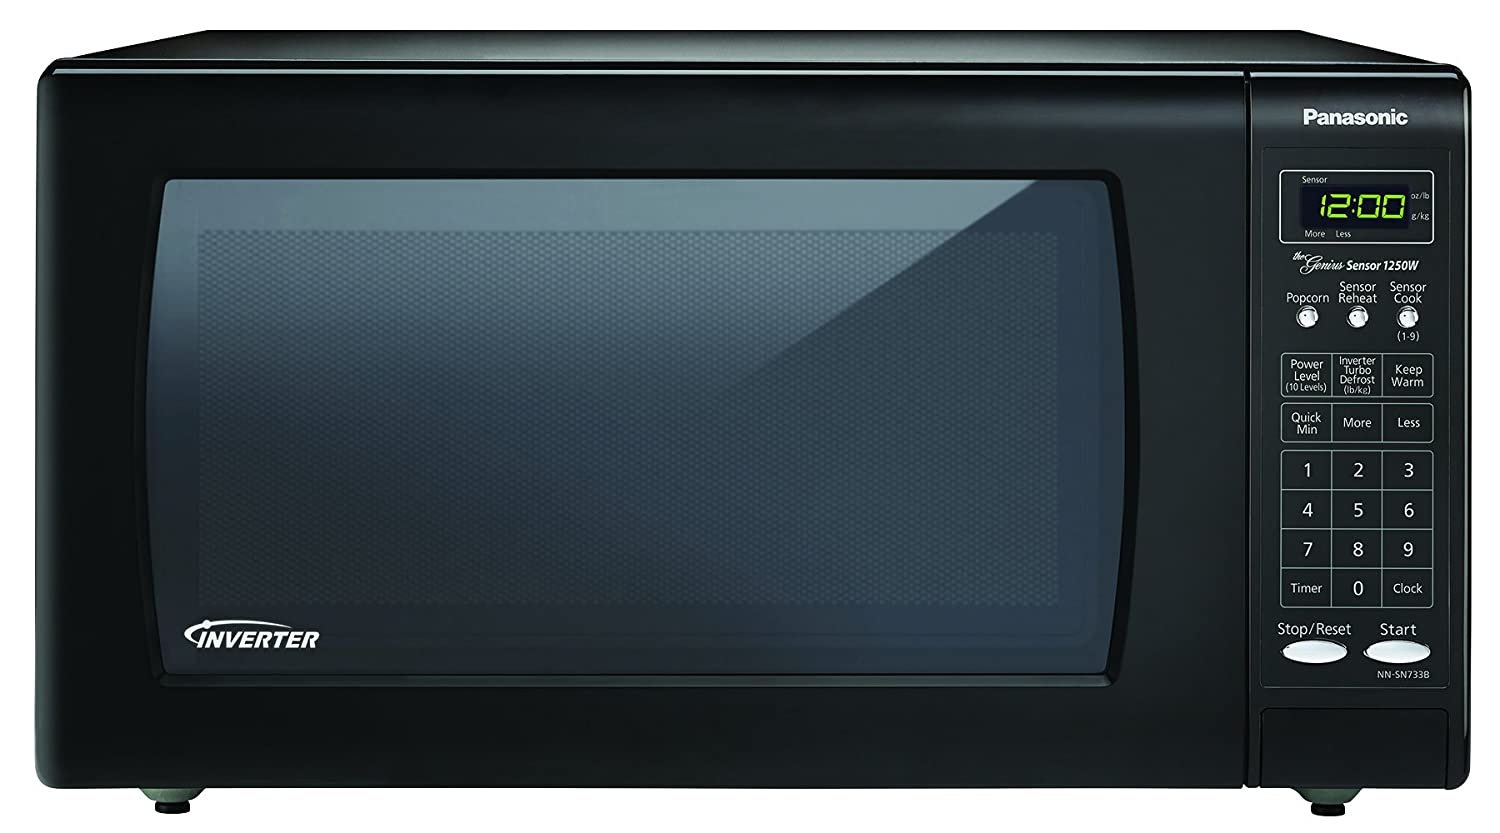 Panasonic nn sn733b black stainless steel 1 6 cubic foot for Built in microwave 24 inches wide